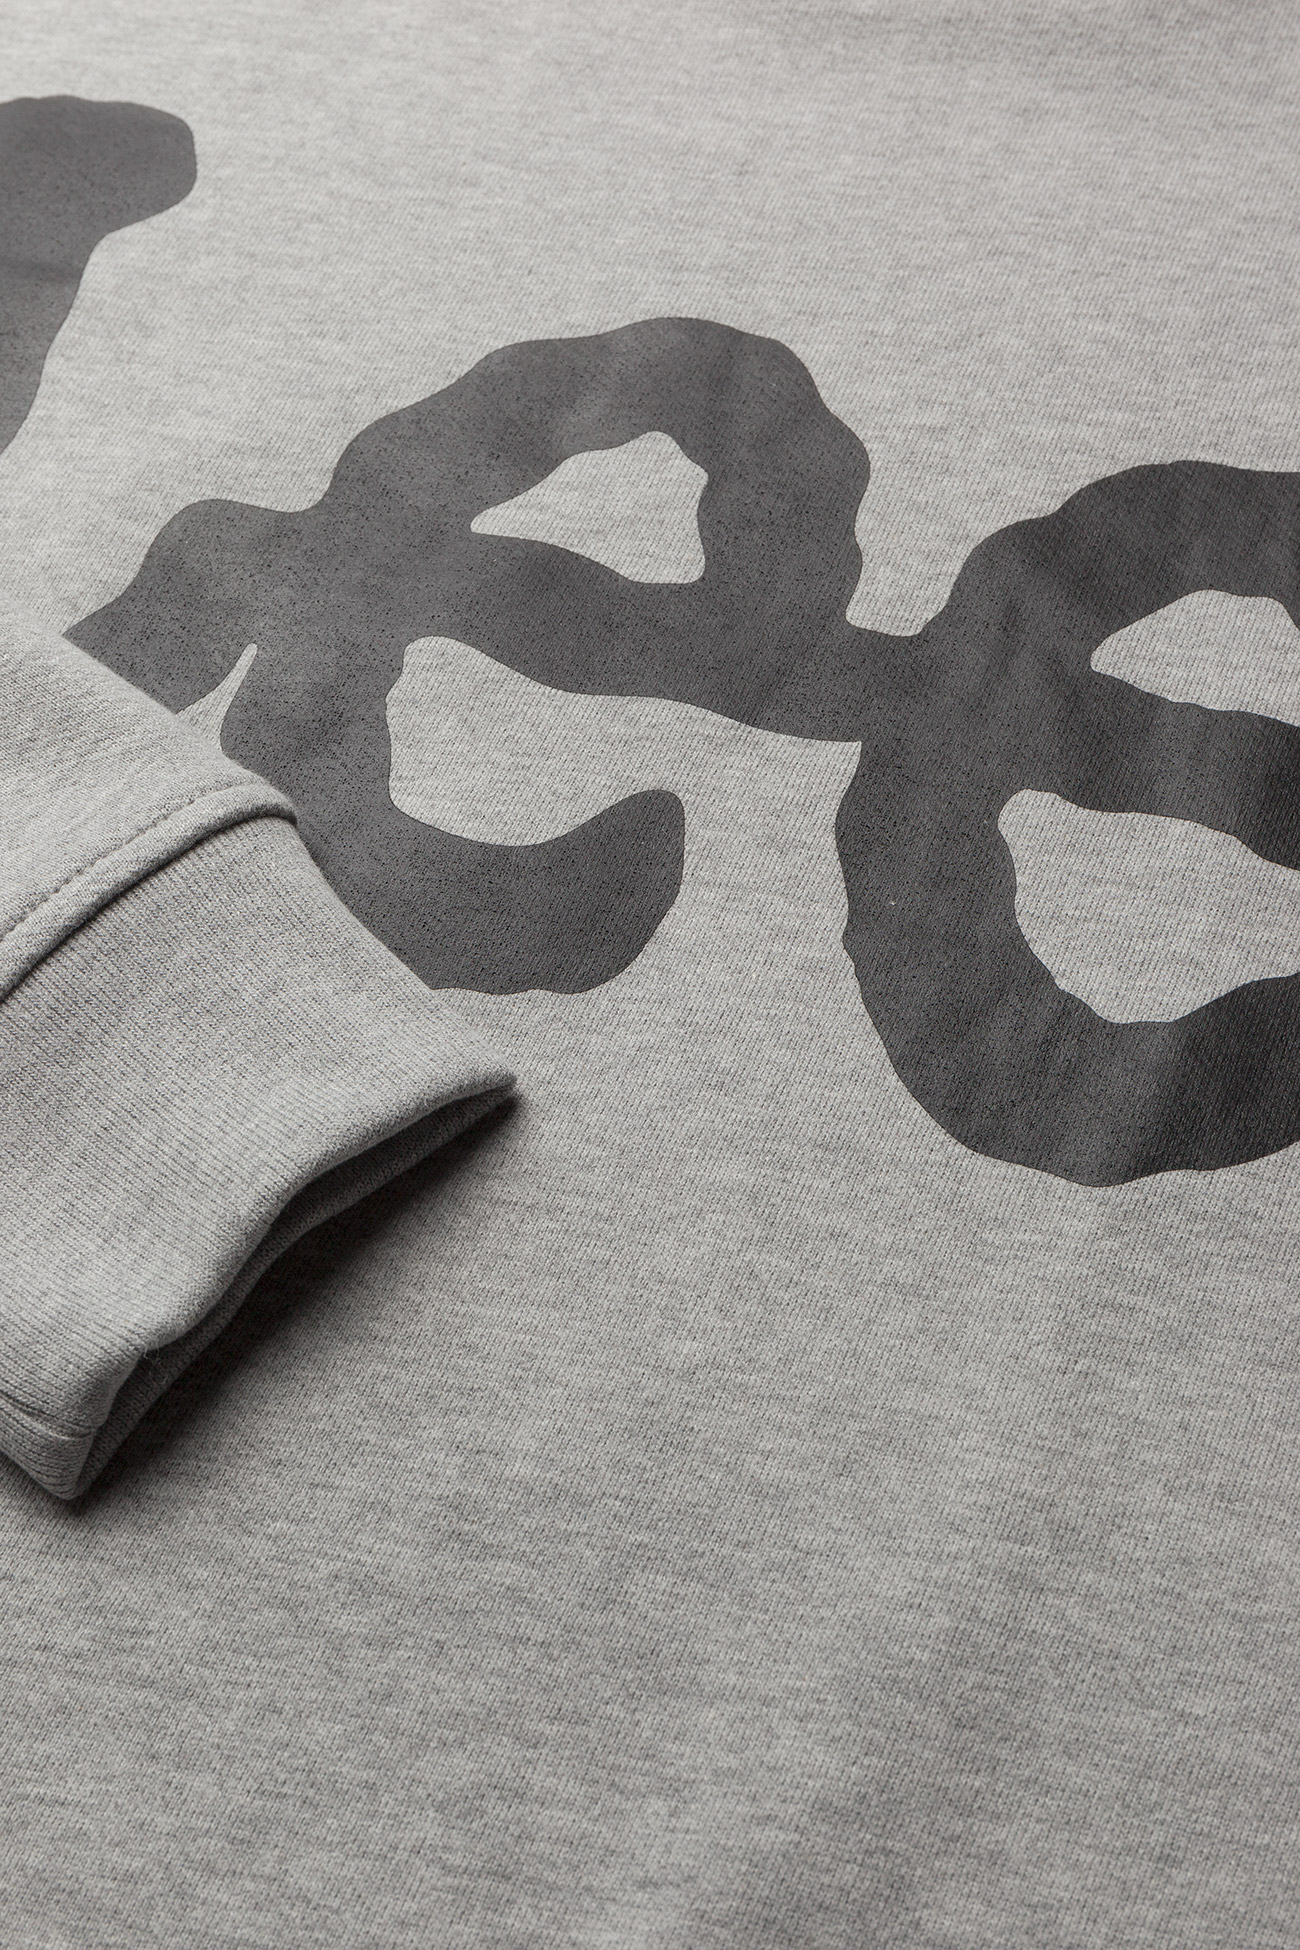 Lee Jeans Logo Sws - Sweatshirts Grey Mele